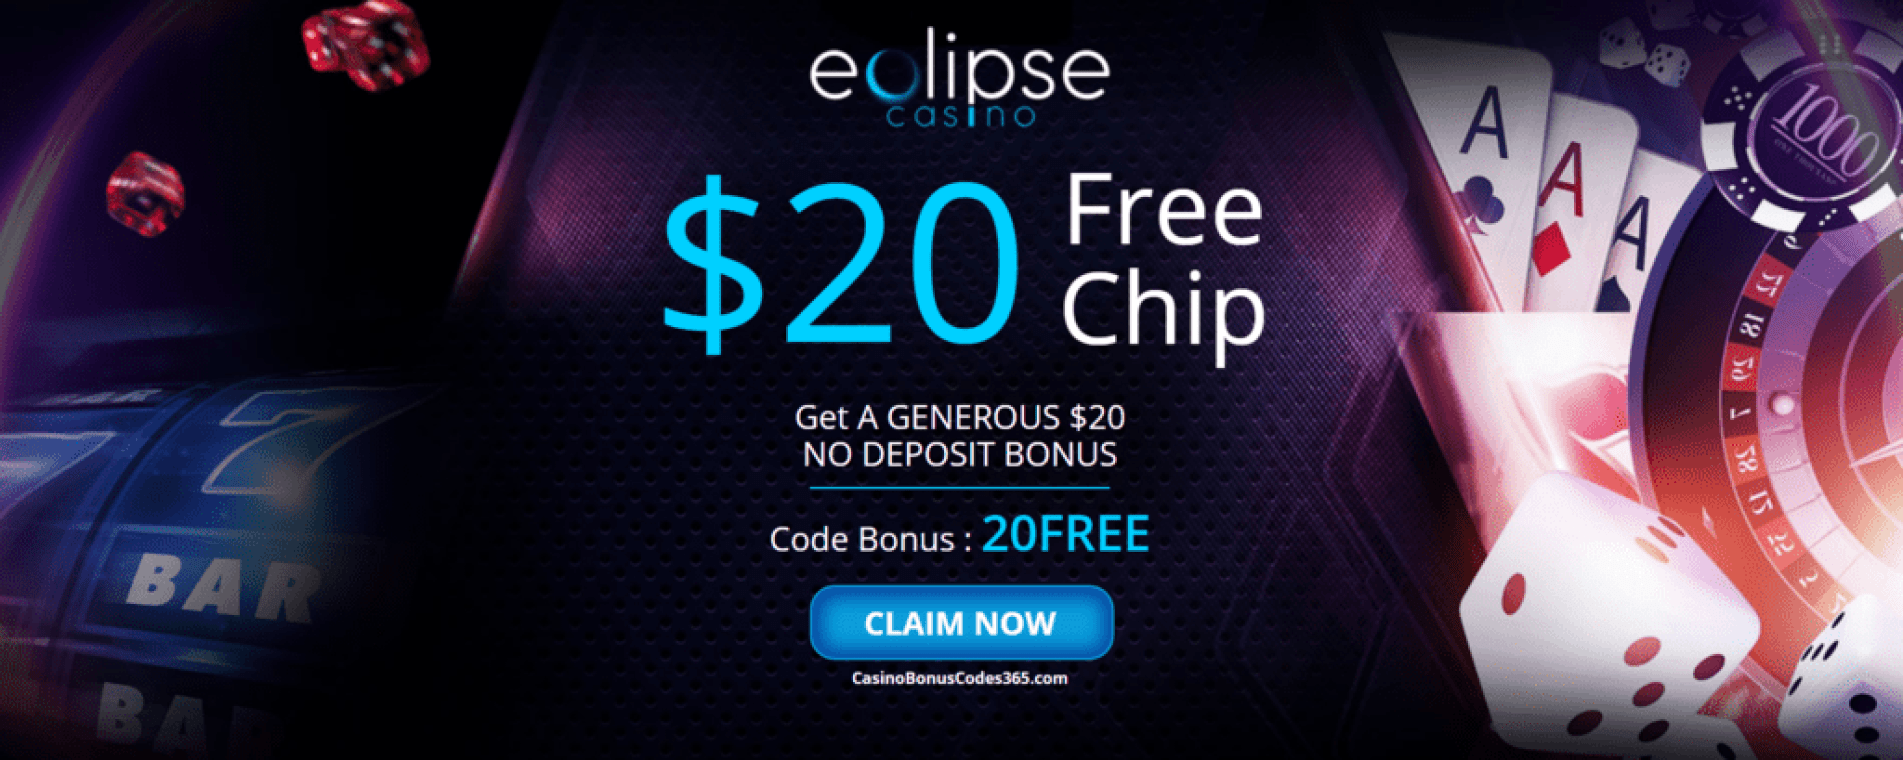 Eclipse Casino $20 No Deposit FREE Chip Welcome Bonus